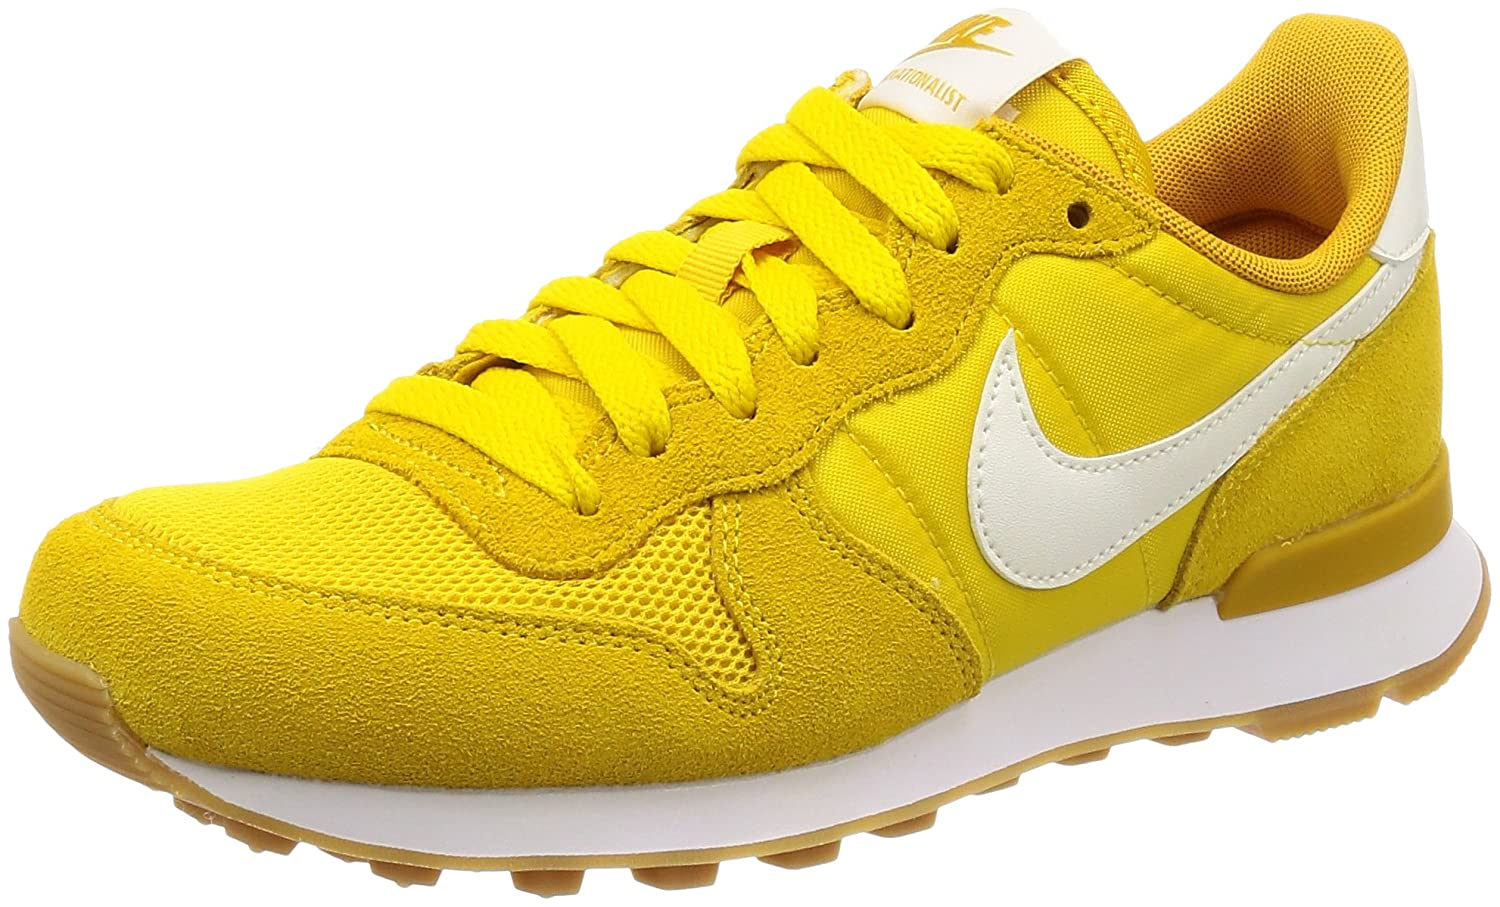 Nike Schuhe Damen Sneaker 828407 703 Internationalist Gelb Yellow ...